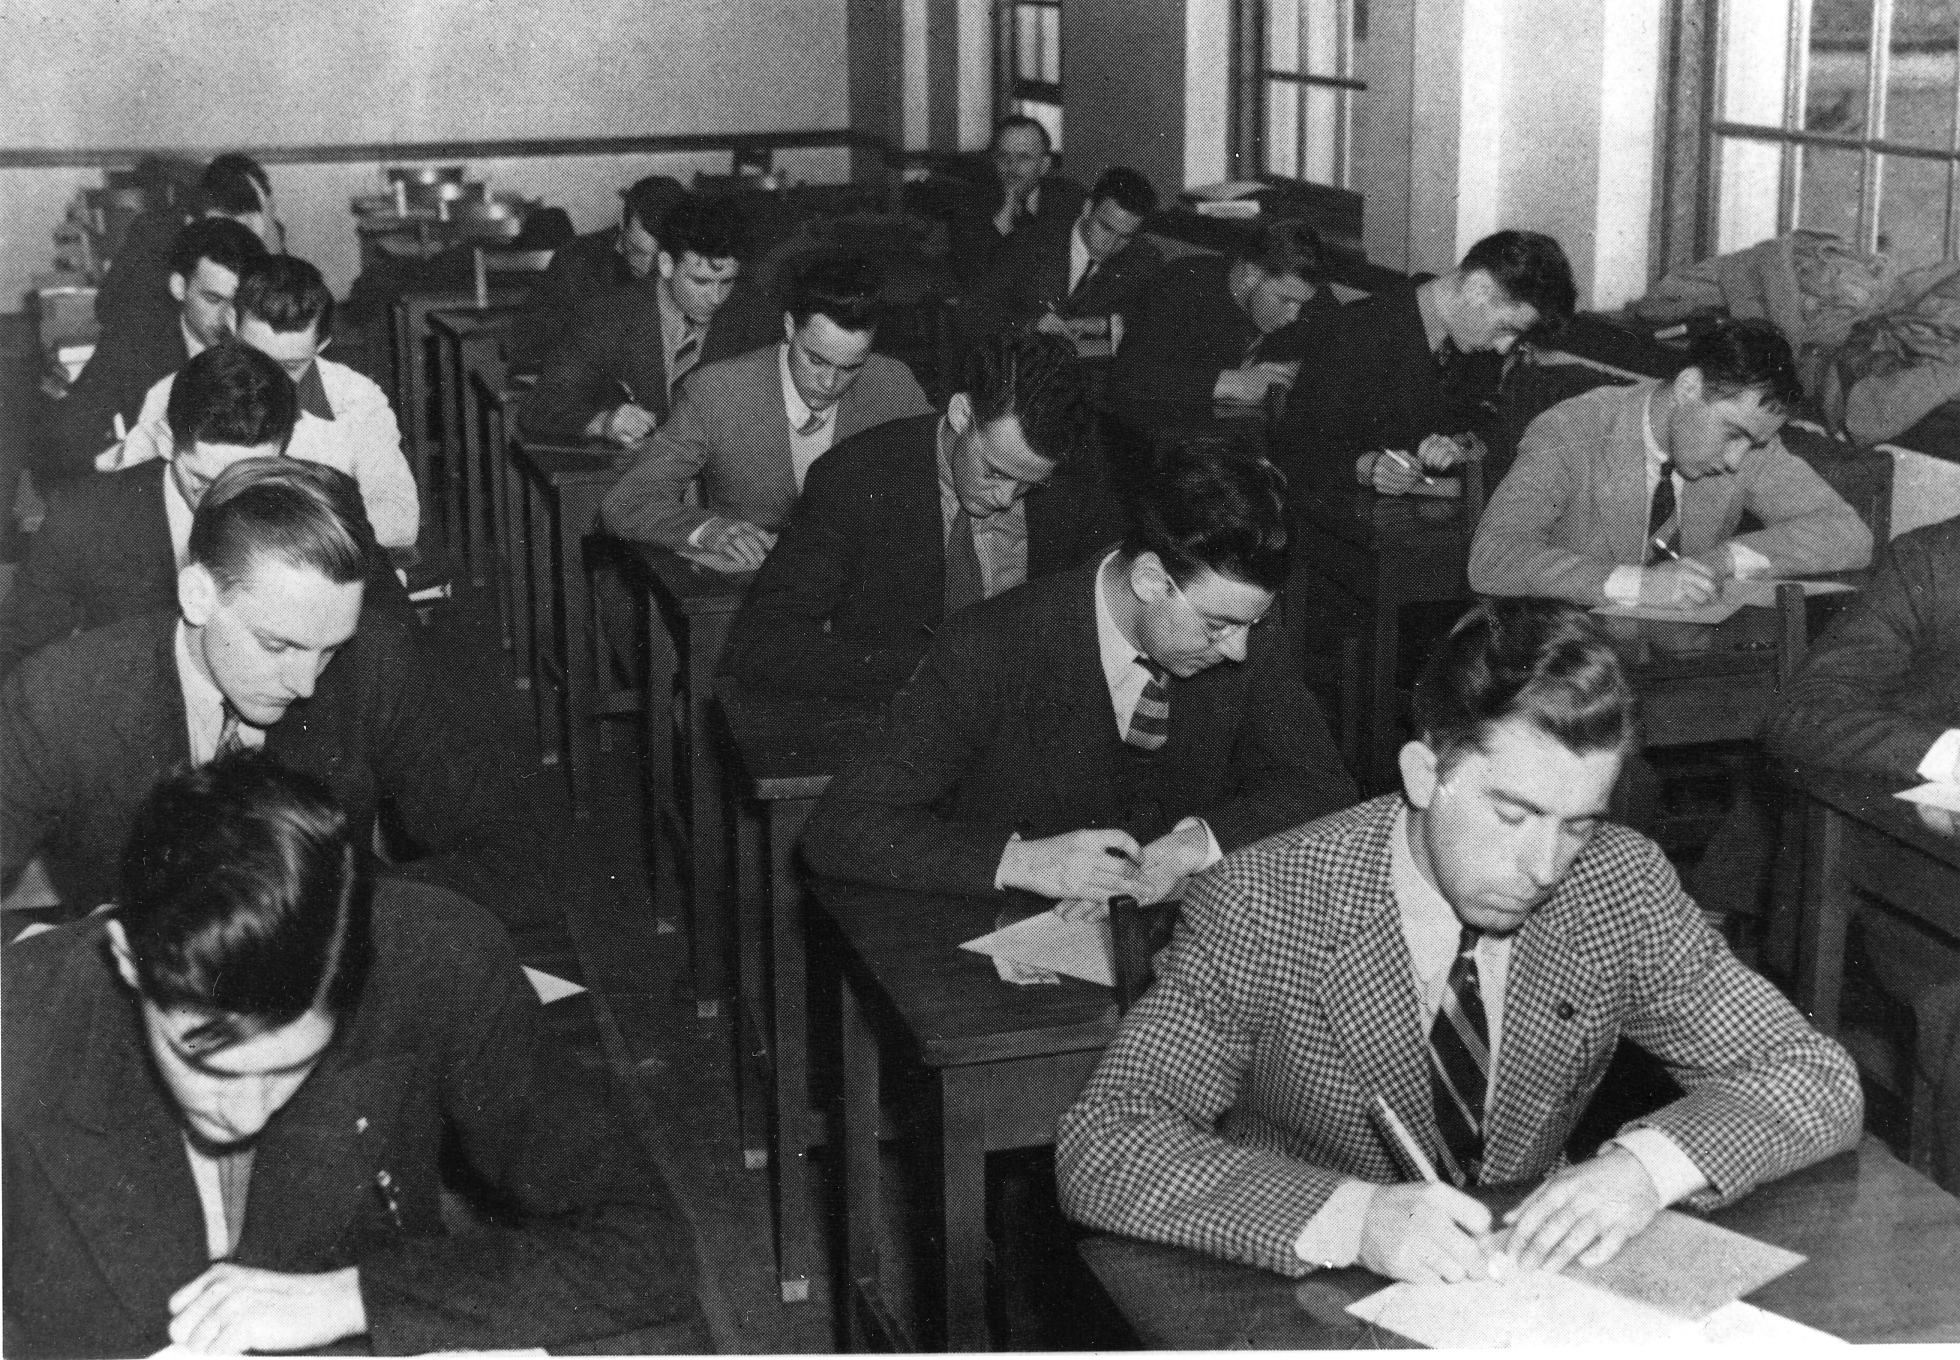 Students wearing coats and ties, 1940